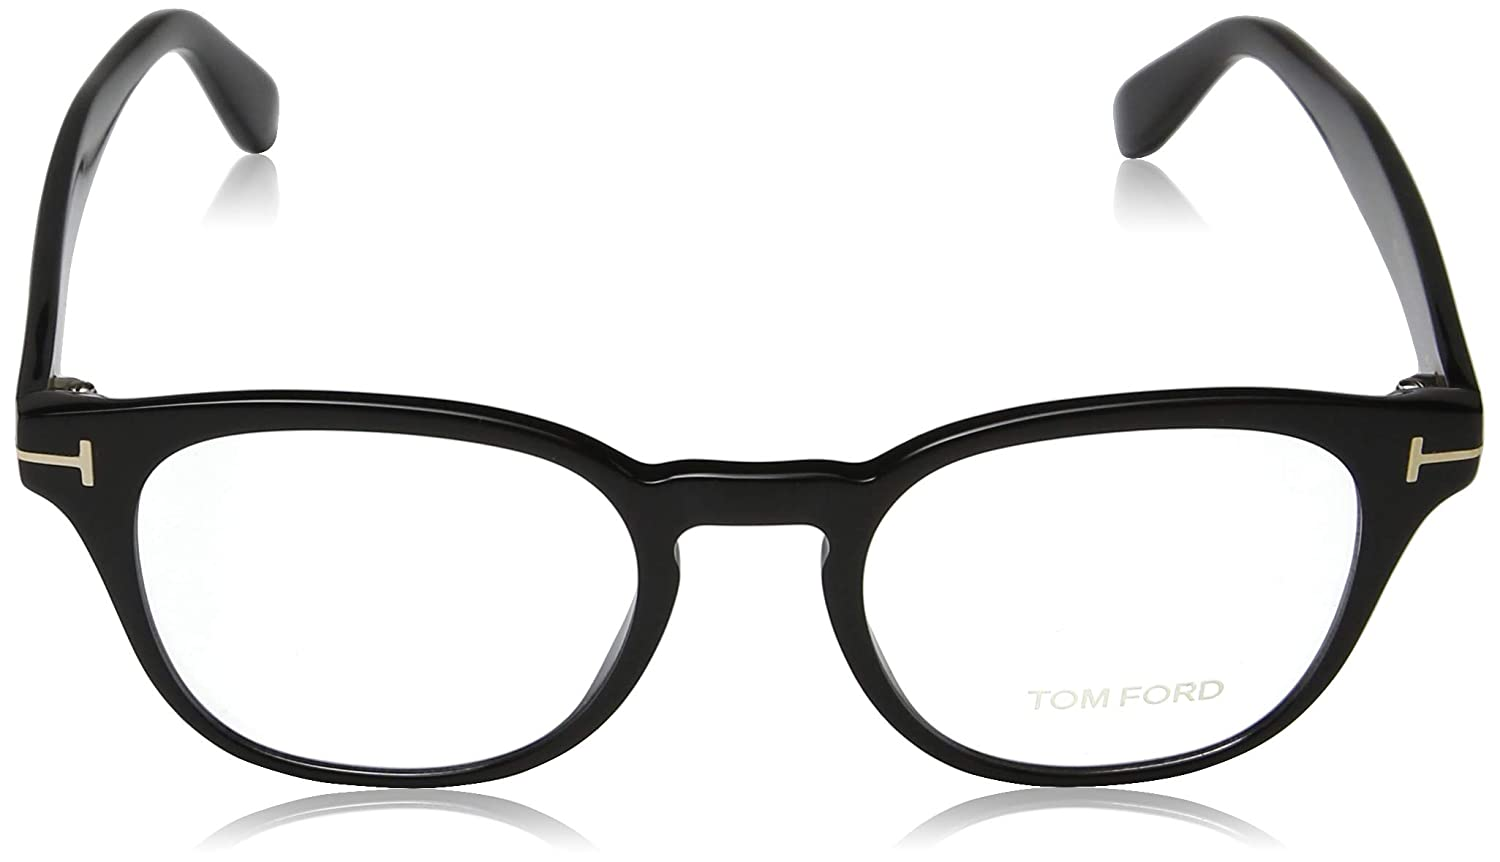 71a3601da4c Tom Ford FT5400-0001 48mm Eyeglasses at Amazon Men s Clothing store